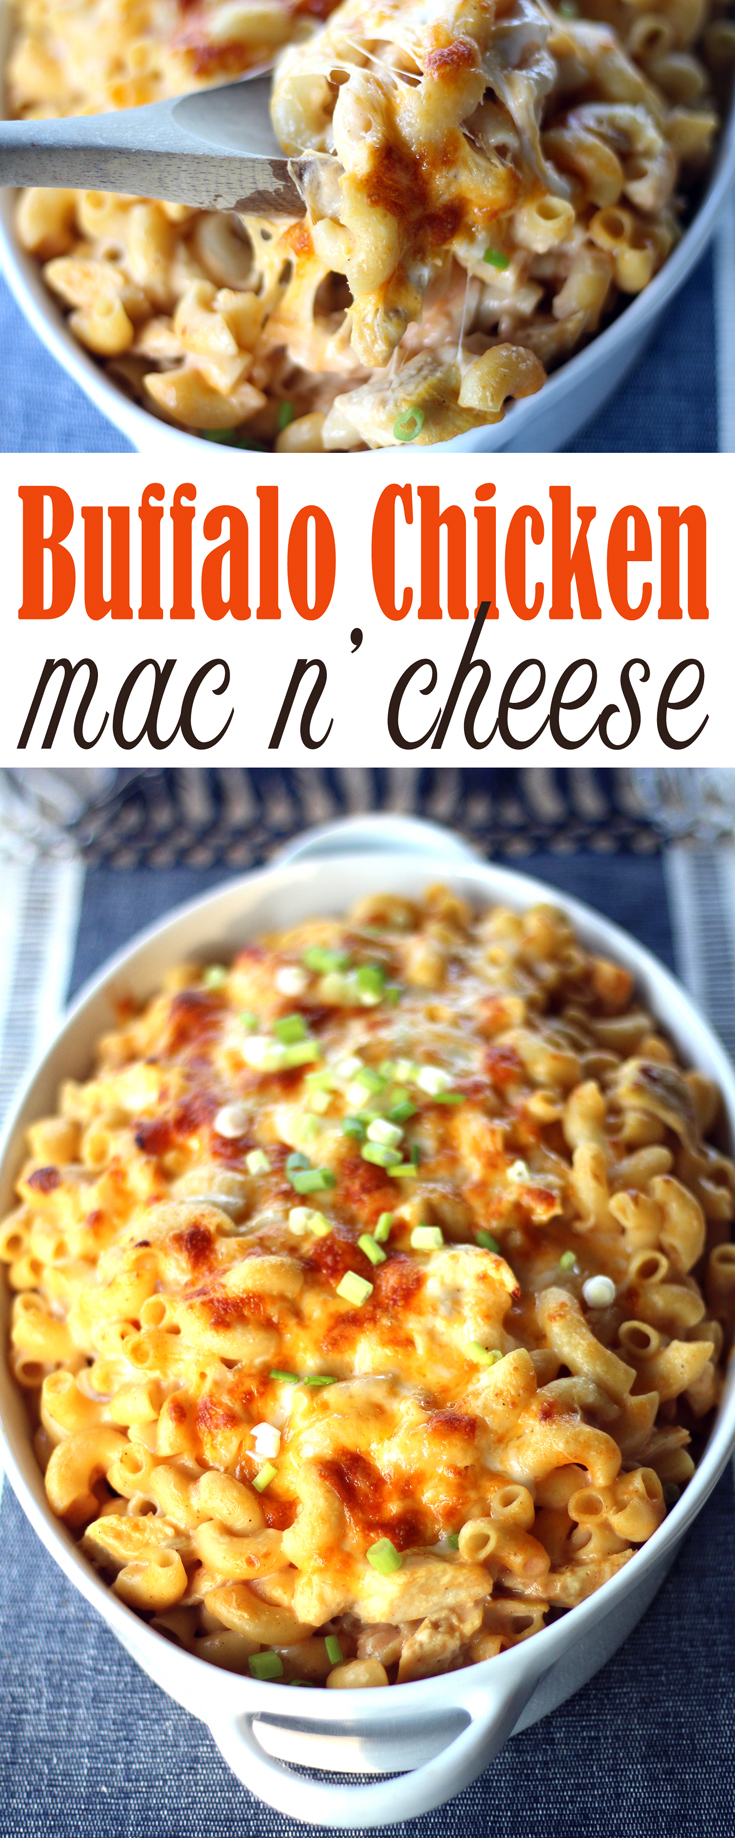 A classic dreamy-creamy mac and cheese recipe made yummier by adding grilled chopped chicken and loads of buffalo hot sauce. Buffalo Chicken Mac and Cheese.